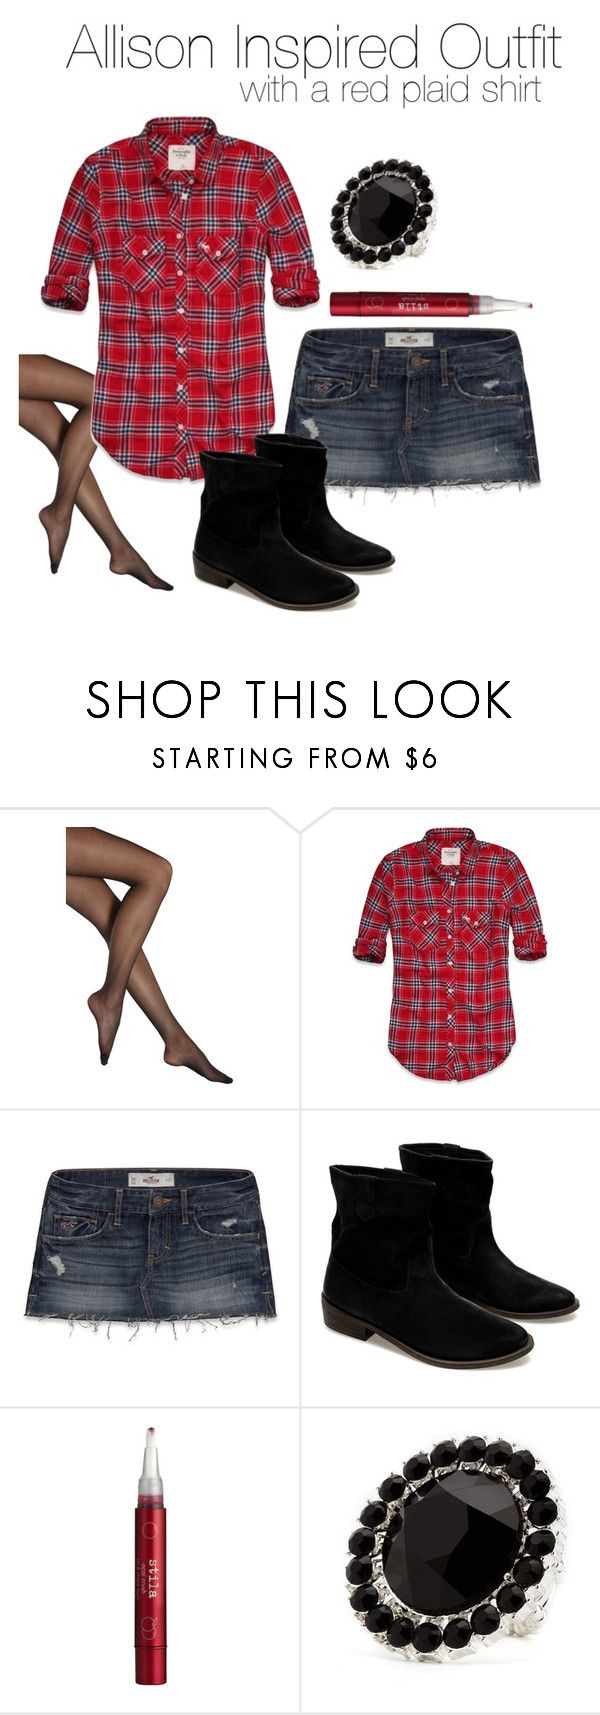 Allison Inspired Outfit With a Red Plaid Shirt by veterization on Polyvore featuring Abercrombie & Fitch, Hollister Co., Falke, Zara, Charlotte Russe and Stila